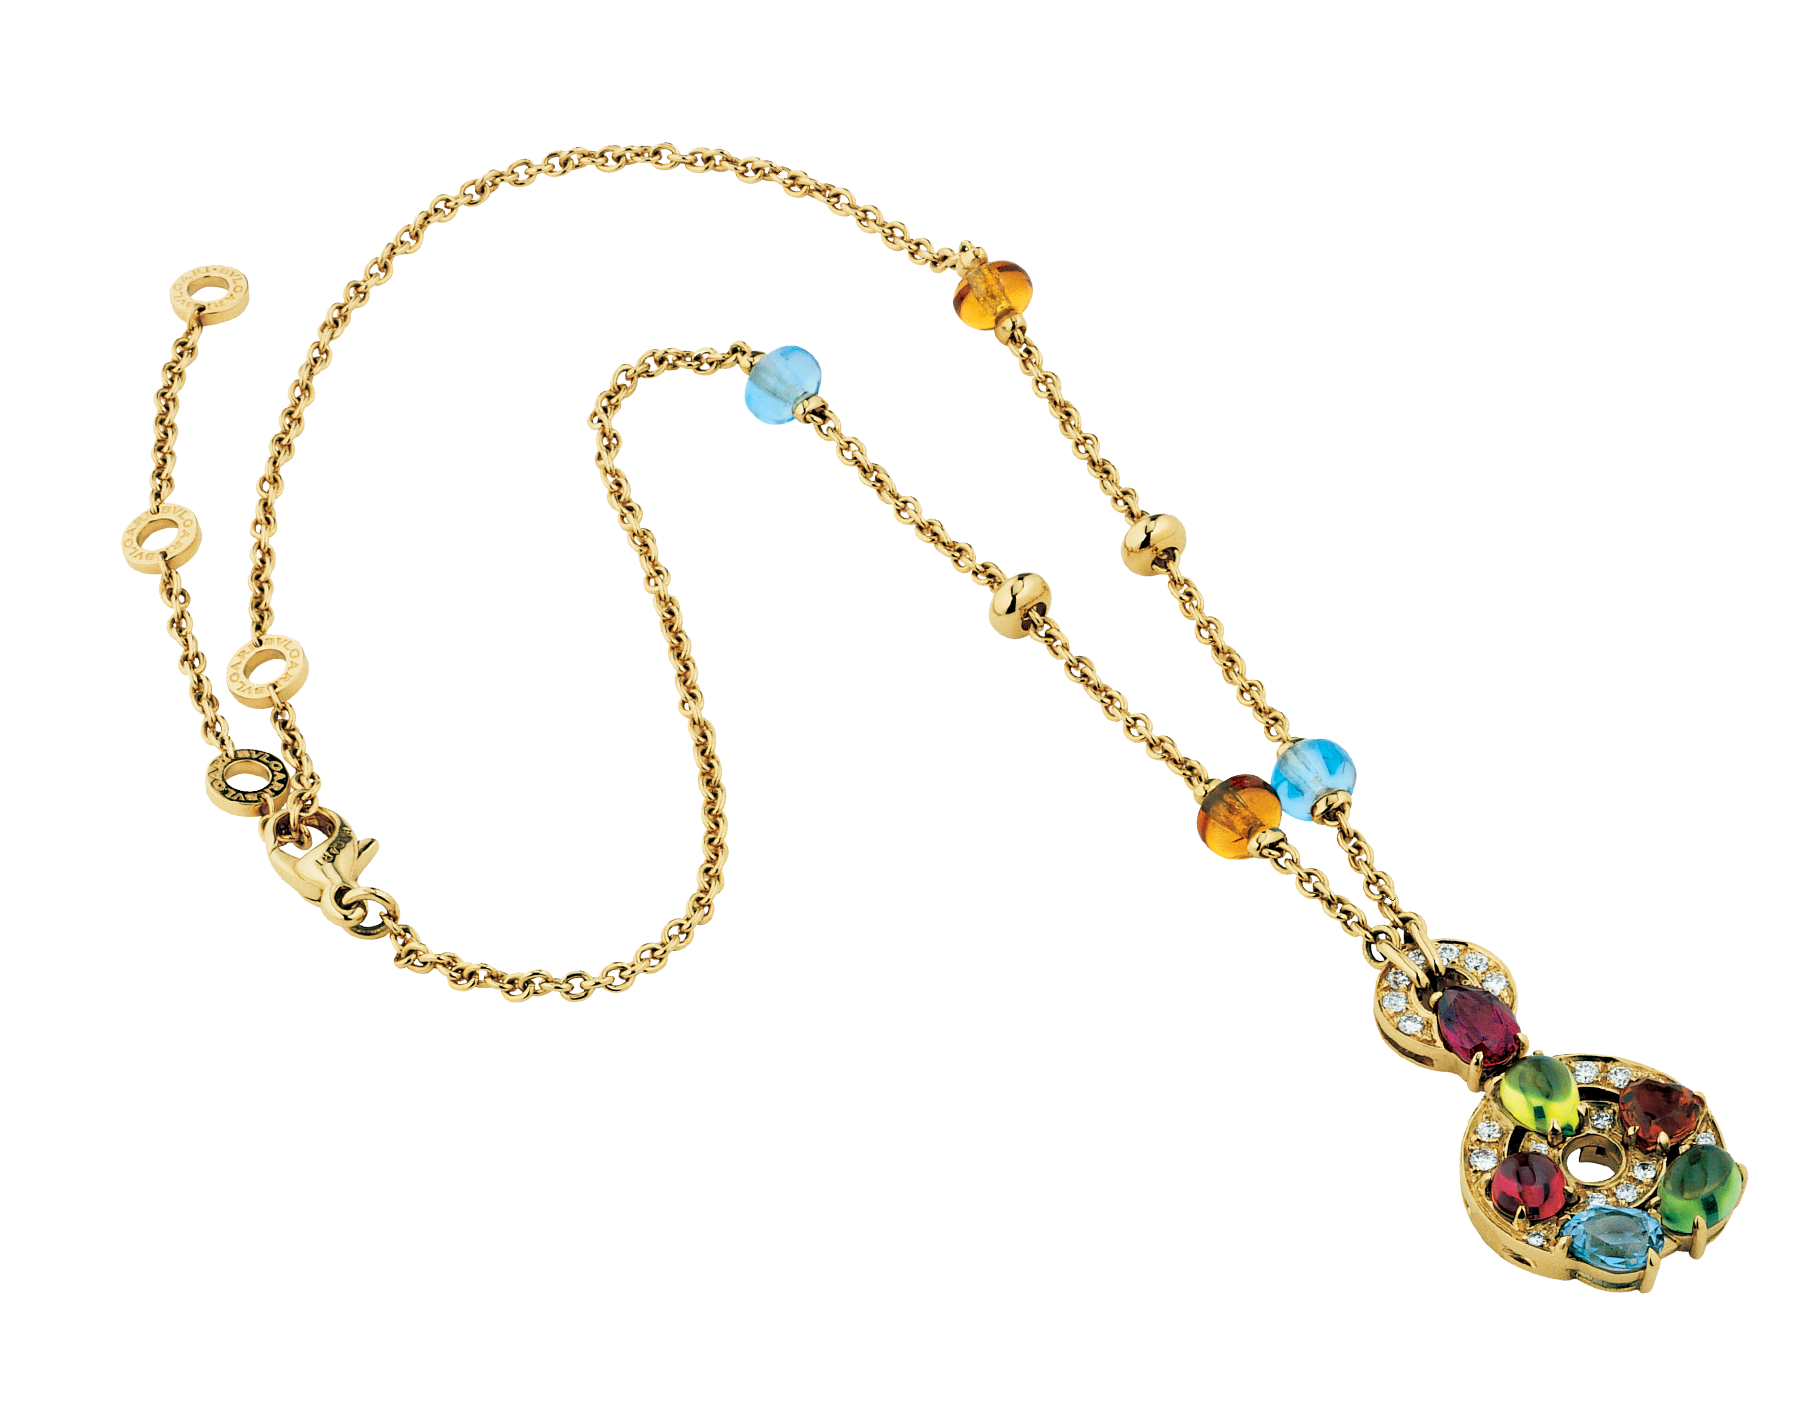 Cerchi 18 kt yellow gold large pendant necklace set with blue topazes, amethysts, green tourmalines, peridots, citrine quartz, rhodolite garnets and pavé diamonds 339139 image 2